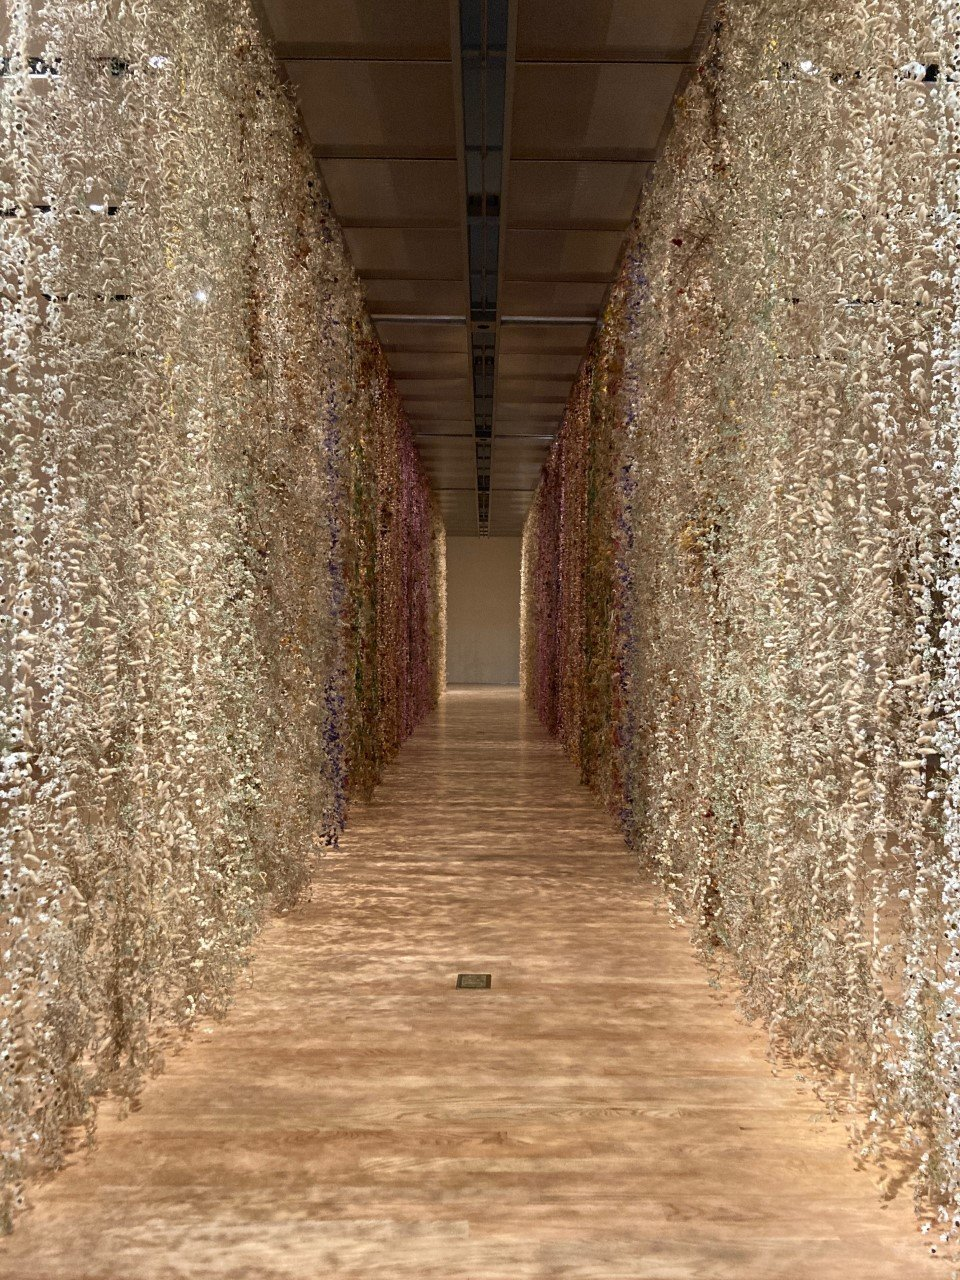 Rebecca Louise Law, The Journey, 2021, Cummer Museum of Art and Gardens